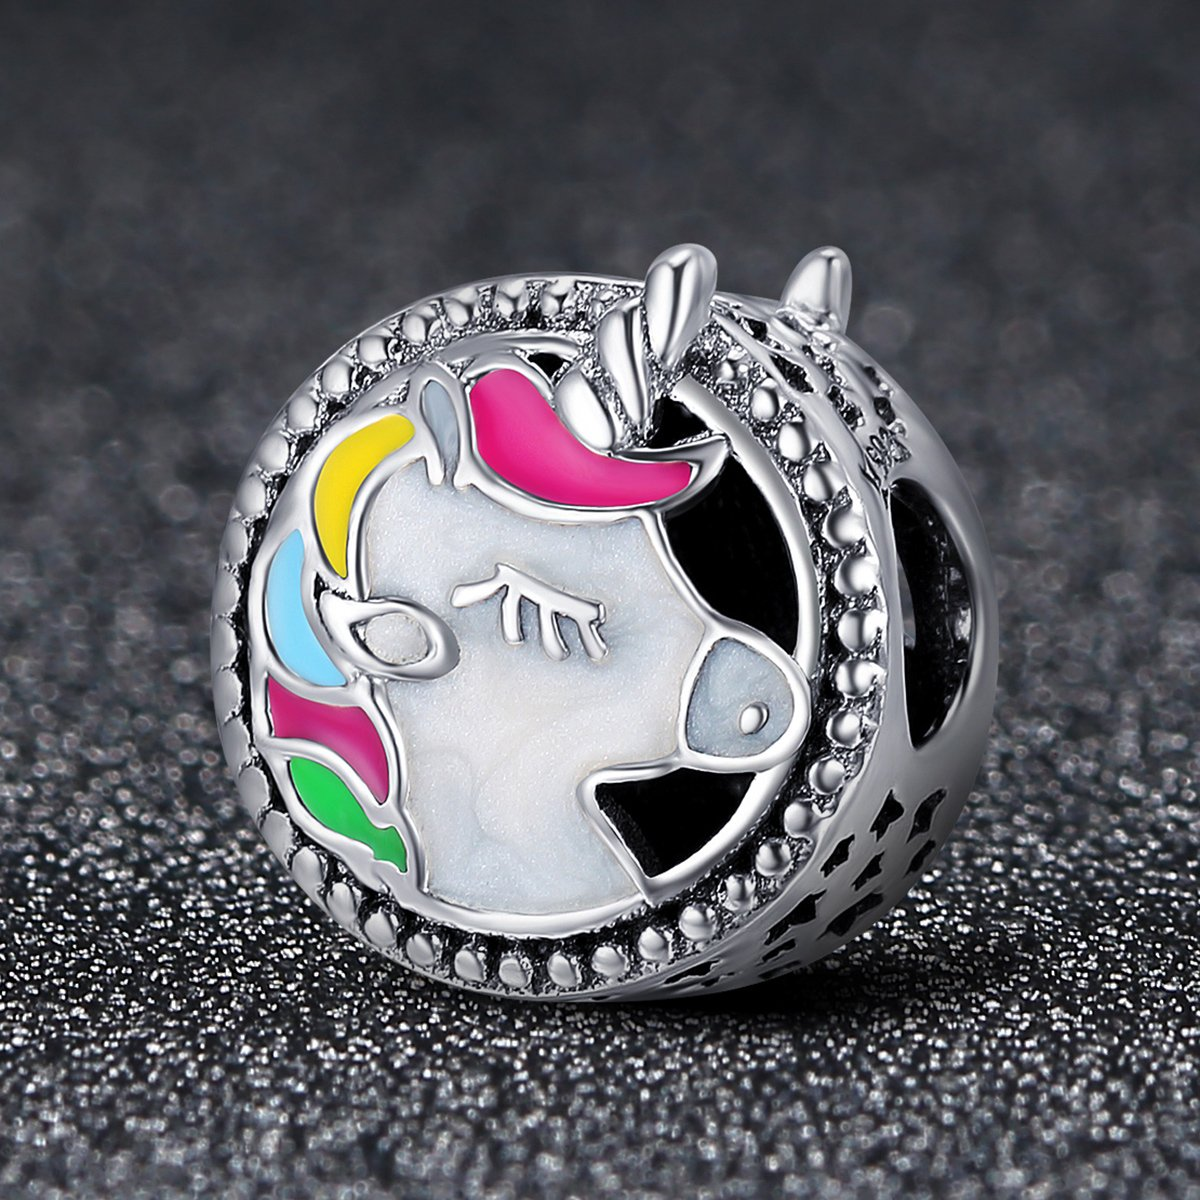 BAMOER 925 Sterling Silver Unicorn Charm Bead Enamel Charm Fit Bracelet Necklace Perfect Jewelry For Women Girls by BAMOER (Image #3)